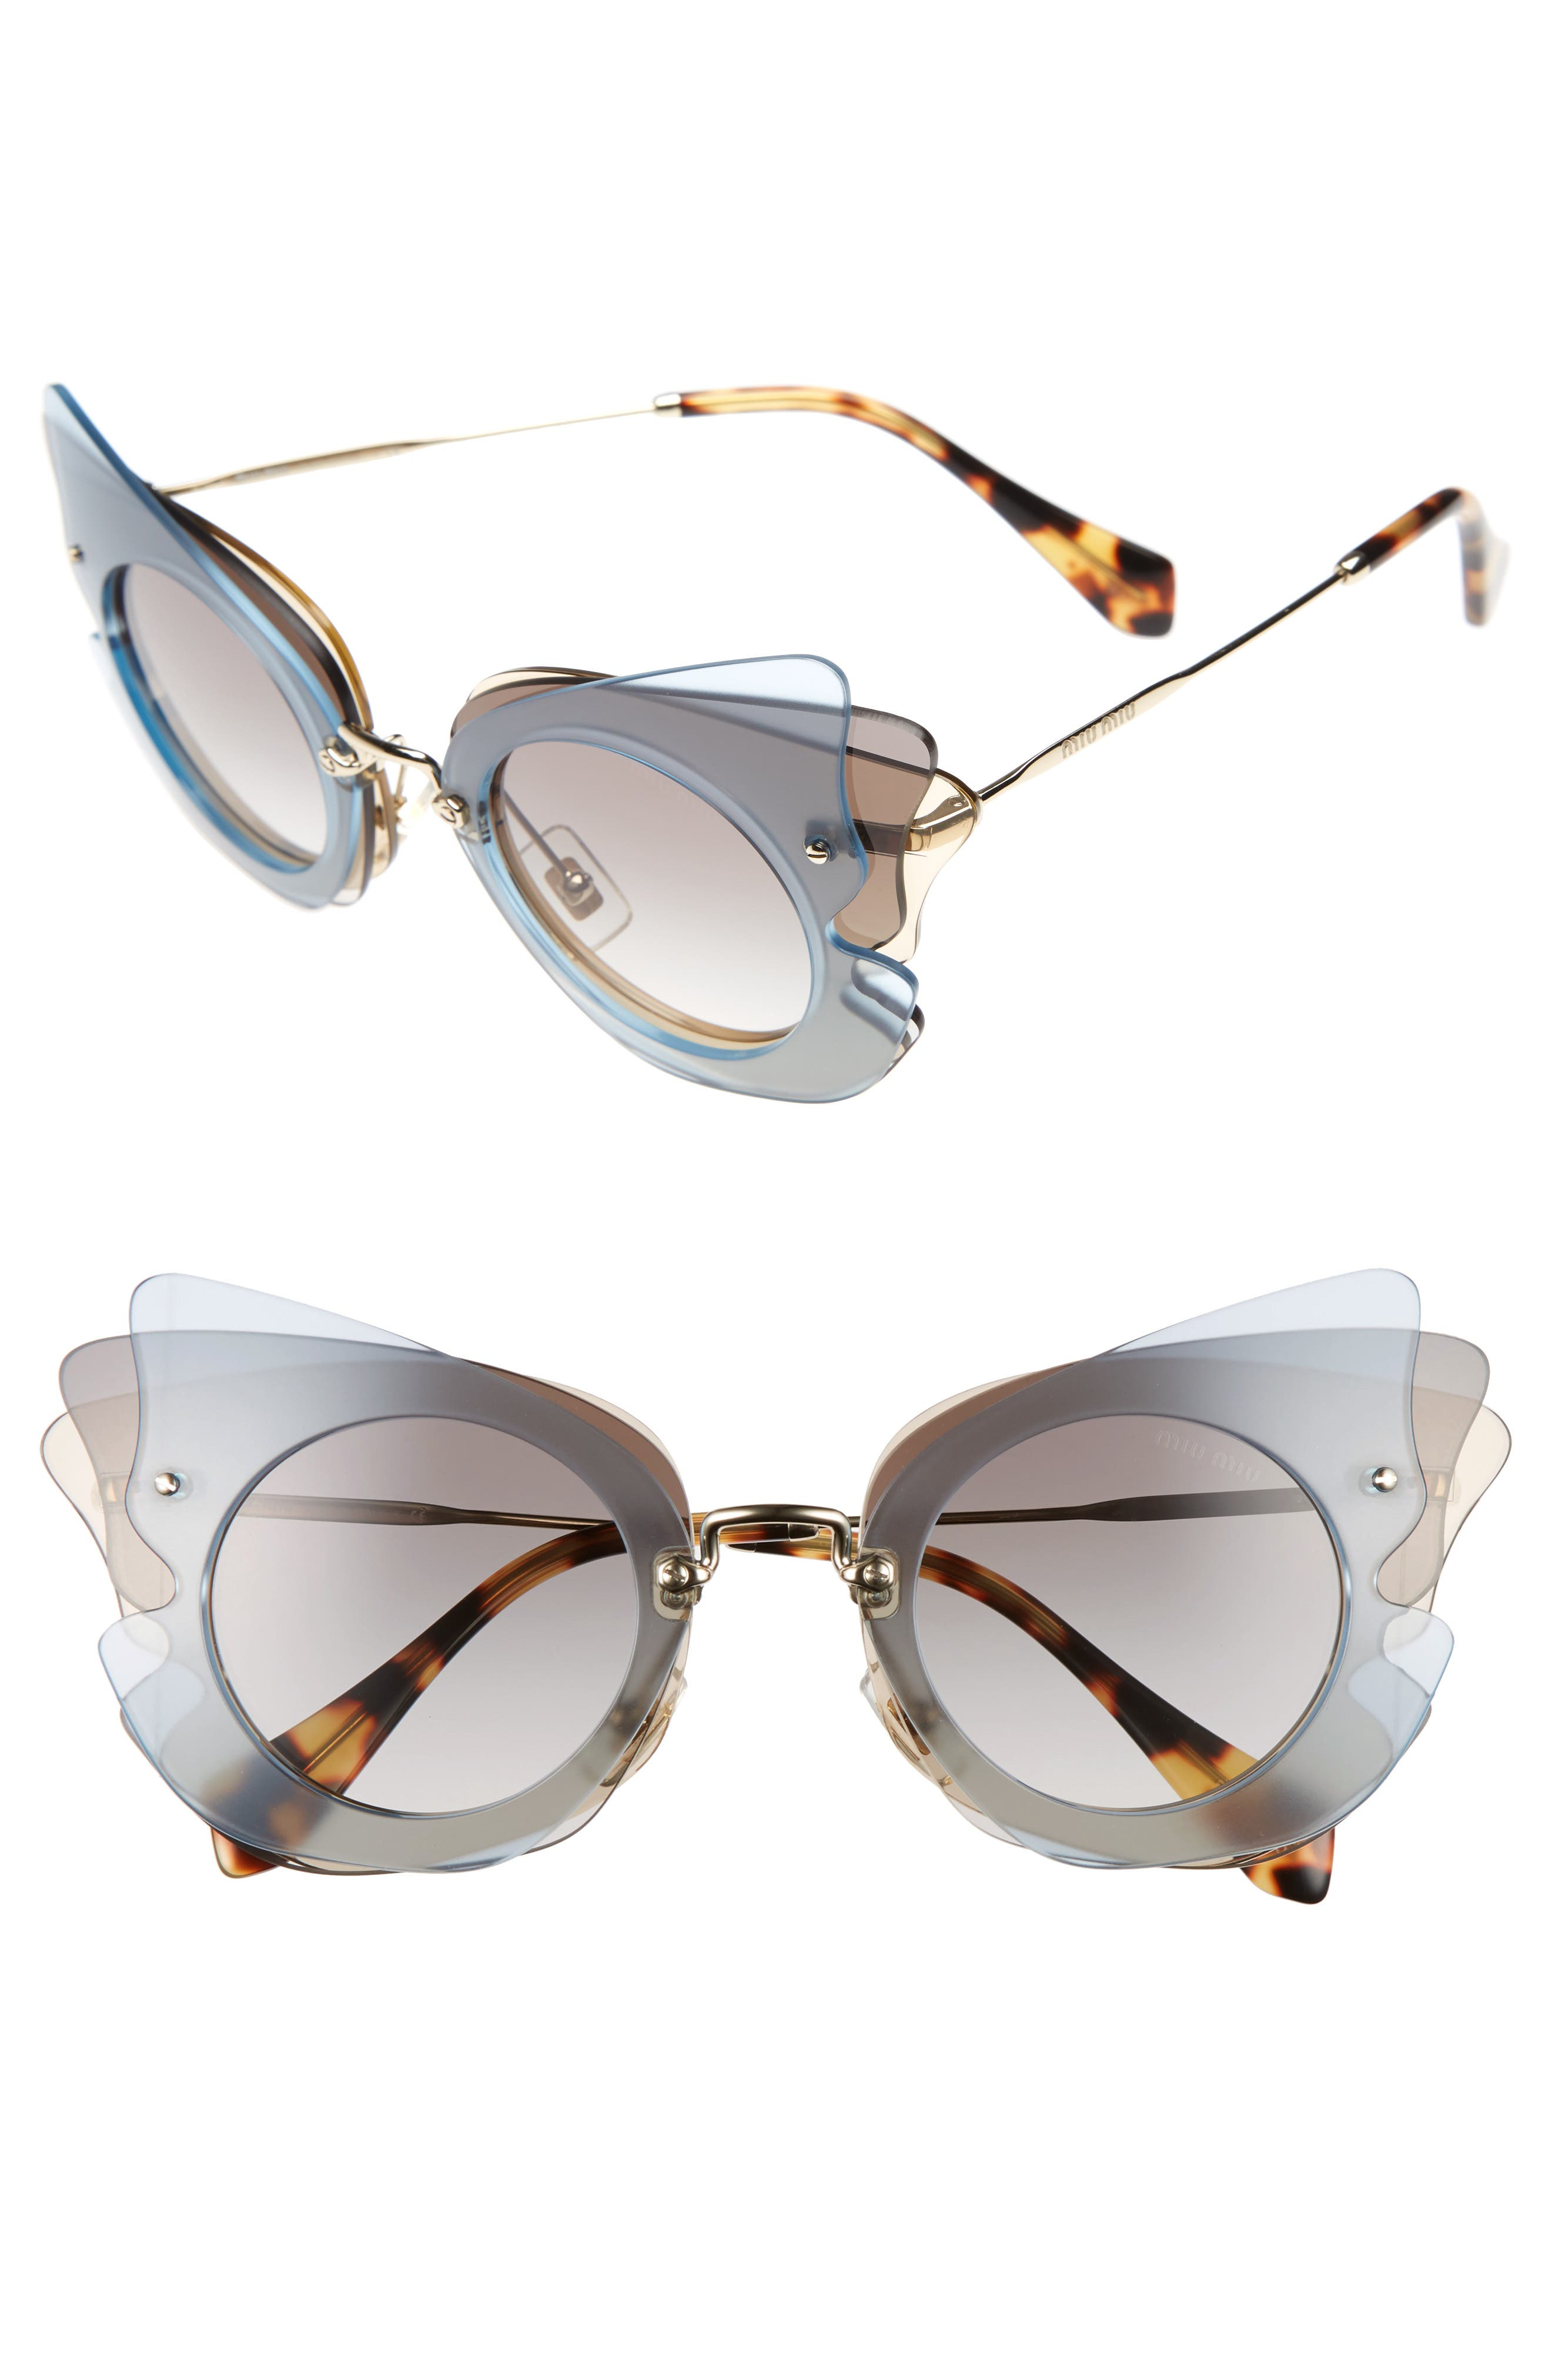 63mm Butterfly Sunglasses,                         Main,                         color, Gold/ Azure